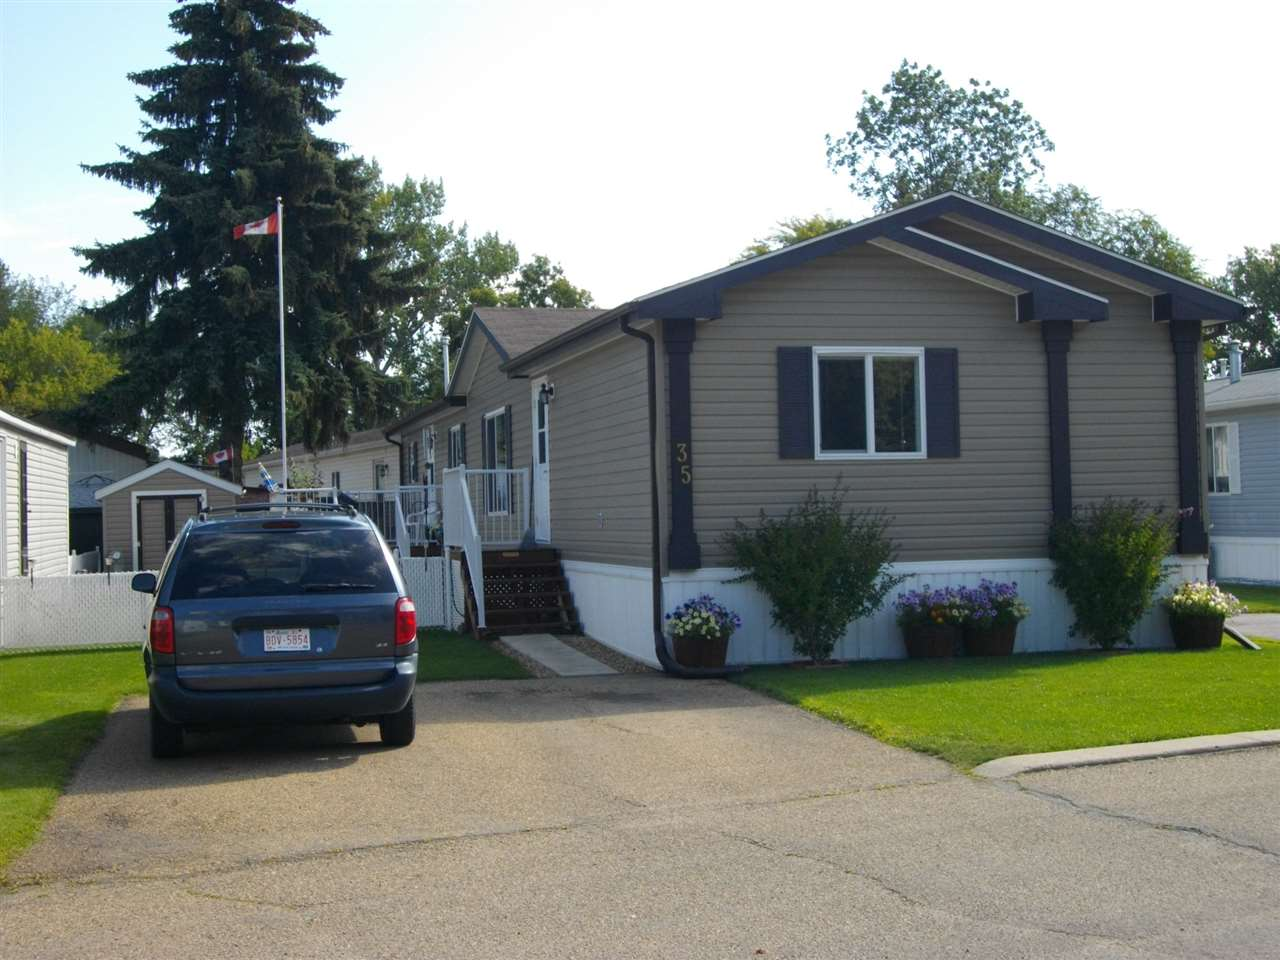 Welcome to this 2011 custom ordered centrally air conditioned modular home featuring an open plan enhanced by a vaulted ceiling.  Entertain guests, relax with a book or watch your favourite program, while sitting beside the cozy fireplace in the Living Room.  Smell those tantalizing aromas wafting out of the Kitchen preceding a great meal with guests.  Stainless steel appliances, a pantry, plenty of cupboards and counter space, as well as an island with pot drawers make this Kitchen a chef's dream.  Be refreshed after a good night's sleep in the Master Bedroom featuring a four piece ensuite with a walk-in shower and a walk-in closet.  One of the two other large Bedrooms can be used as a guest room for visitors, a hobby room, den or an office.  Barbeque on the back deck during those warm summer evenings. A storage shed is ideal for the garden tools and excess storage.  Pick fresh vegetables or strawberries from the small garden or half barrel pots. This home features many upgrades for you to enjoy.